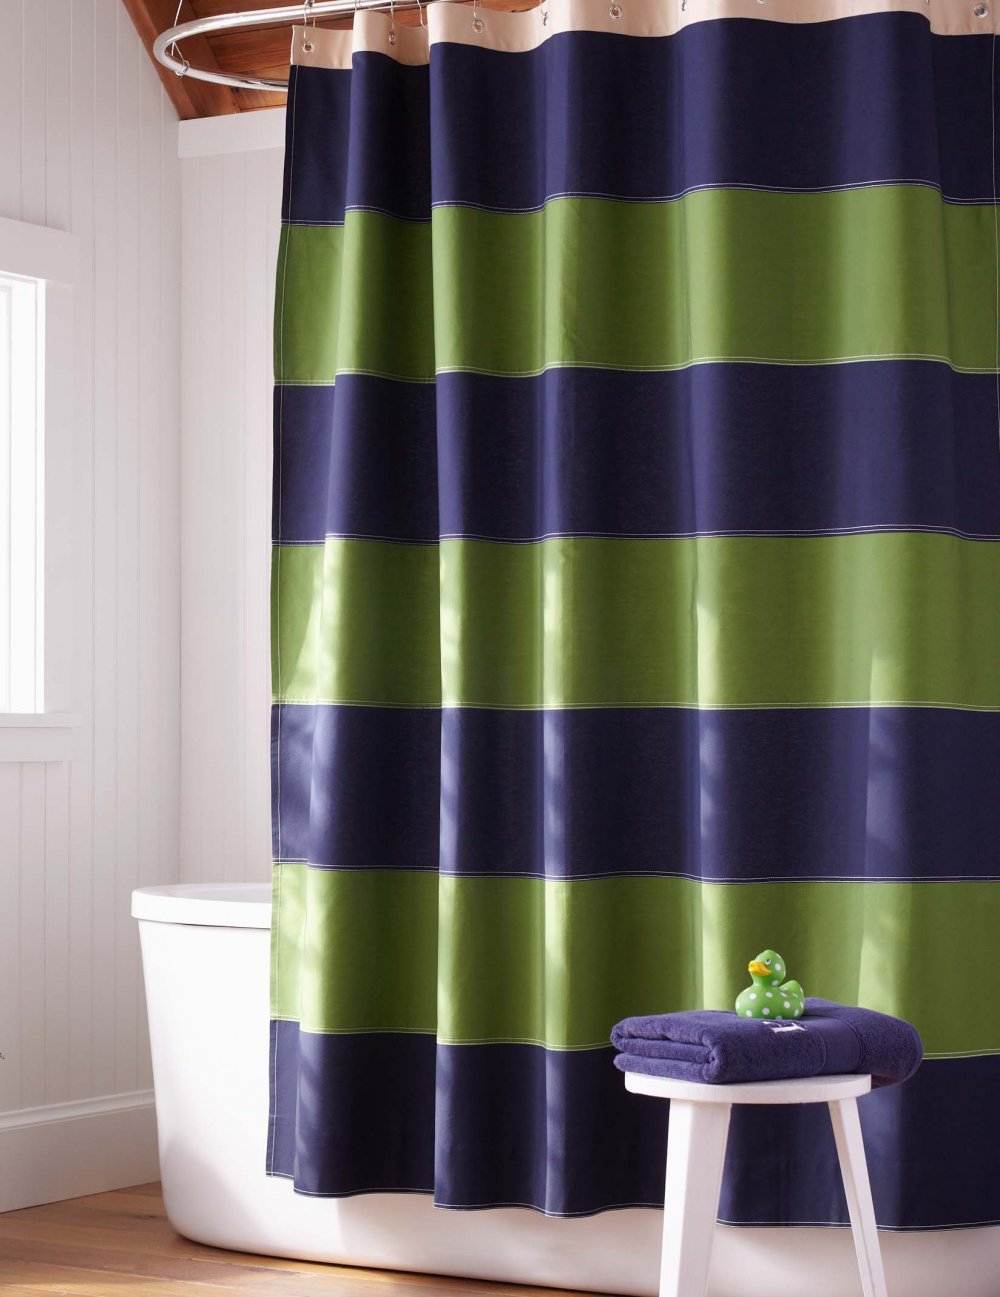 Shower Curtains Photo Heres A Shower Curtain With Navy B throughout measurements 1000 X 1297